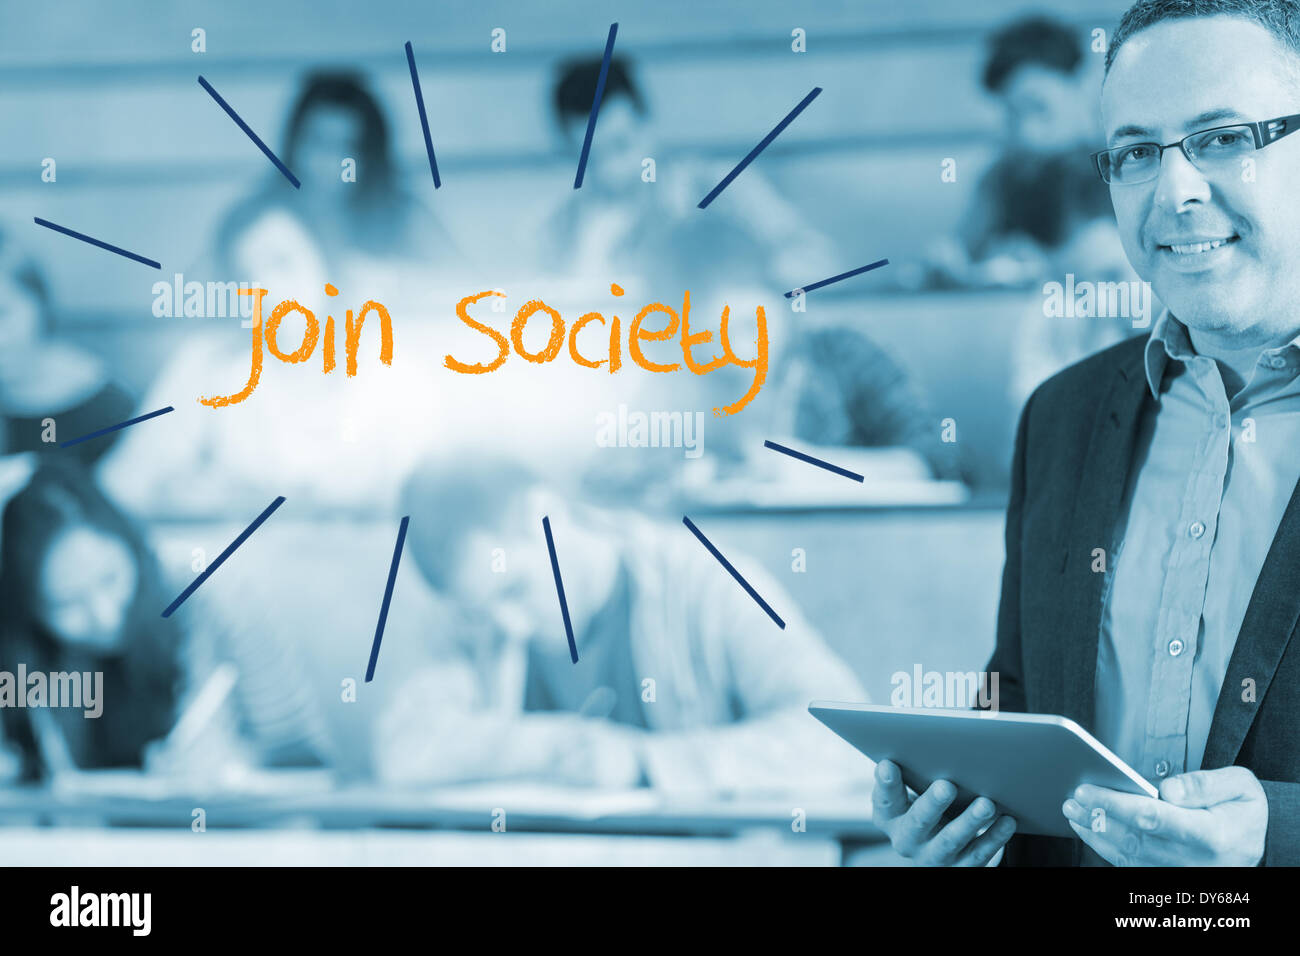 Join society against lecturer standing in front of his class in lecture hall - Stock Image